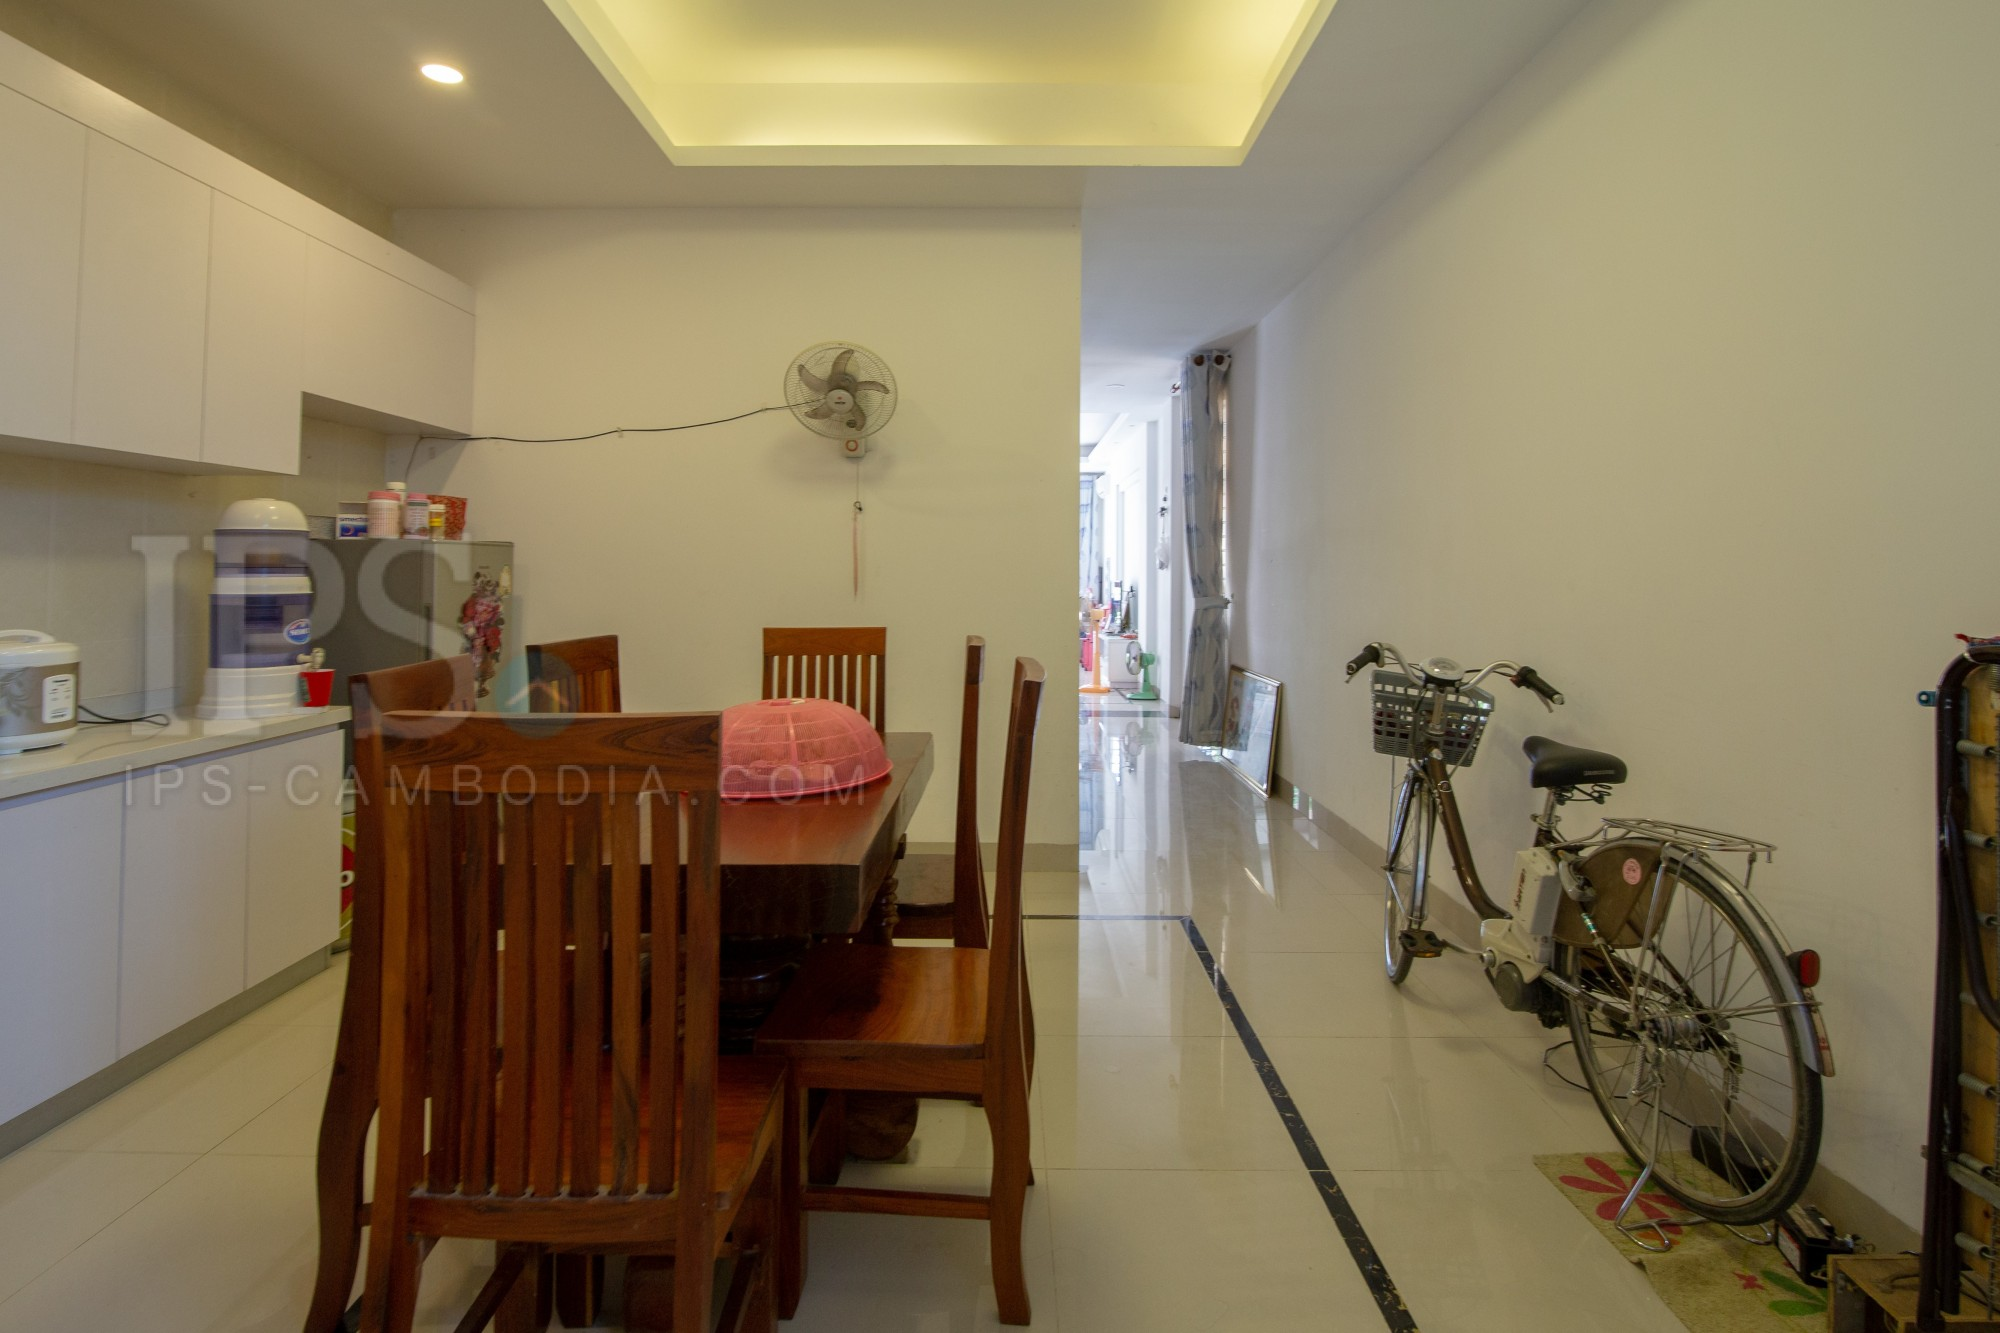 4 Bedroom Link House For Sale - Khan Mean Chey Phnom Penh